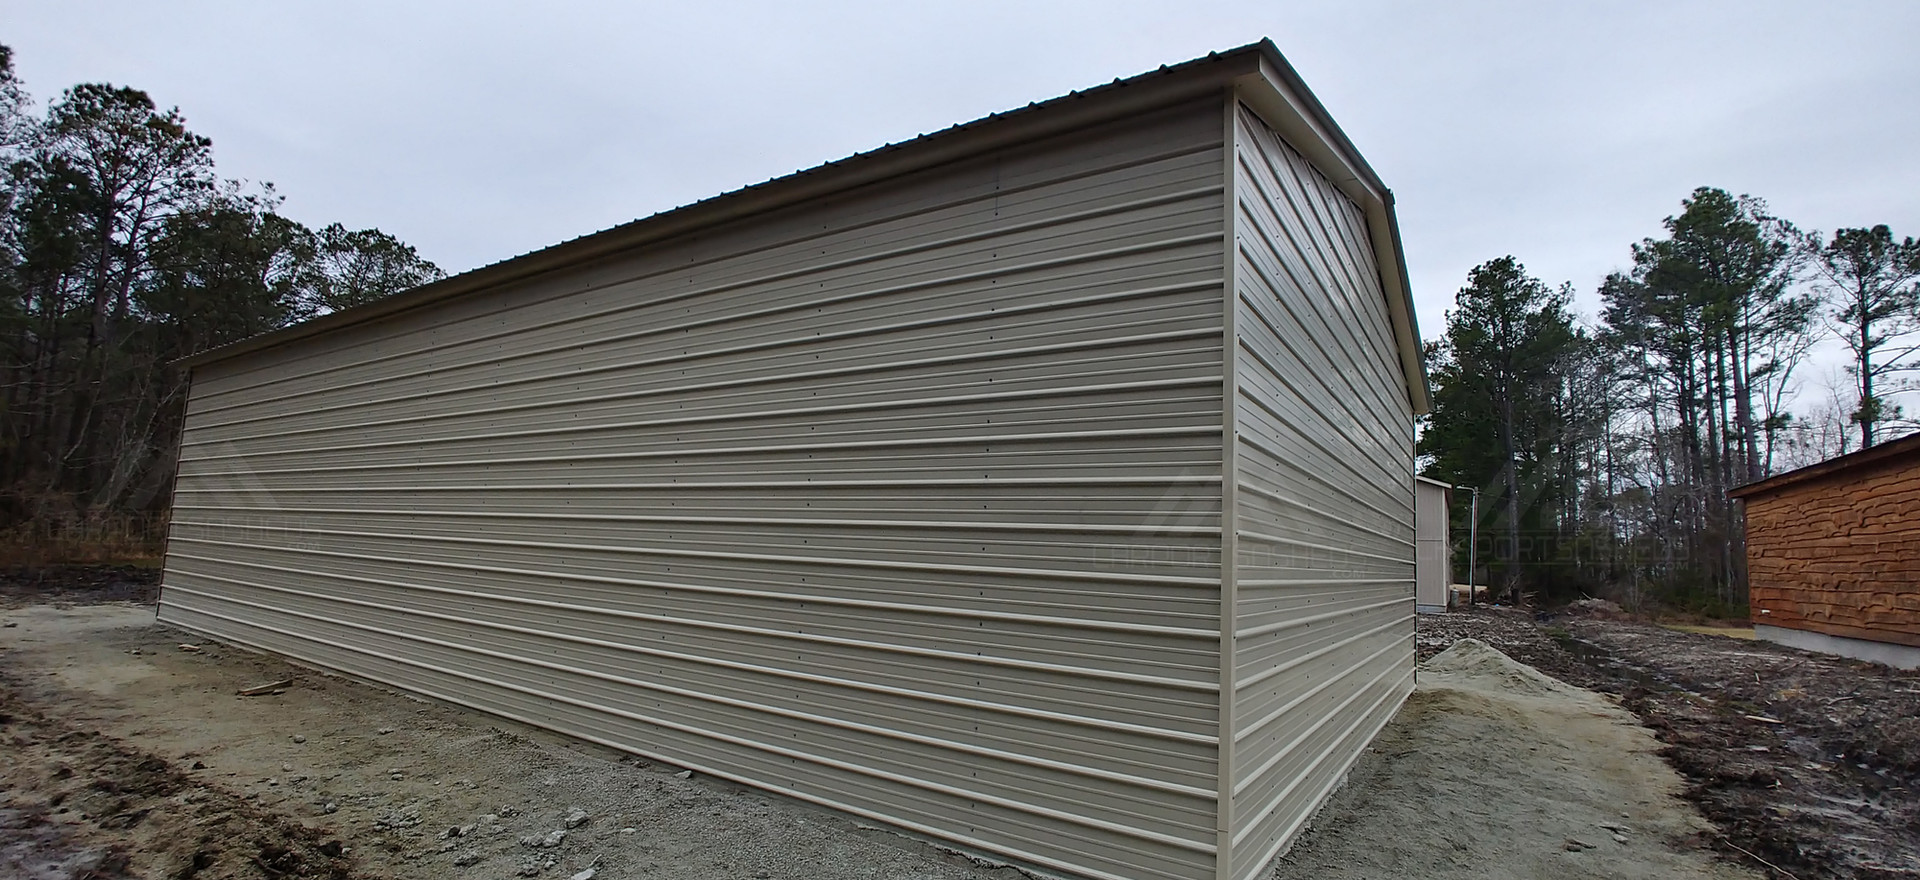 back and left side view of 30x50x12 Metal Garage